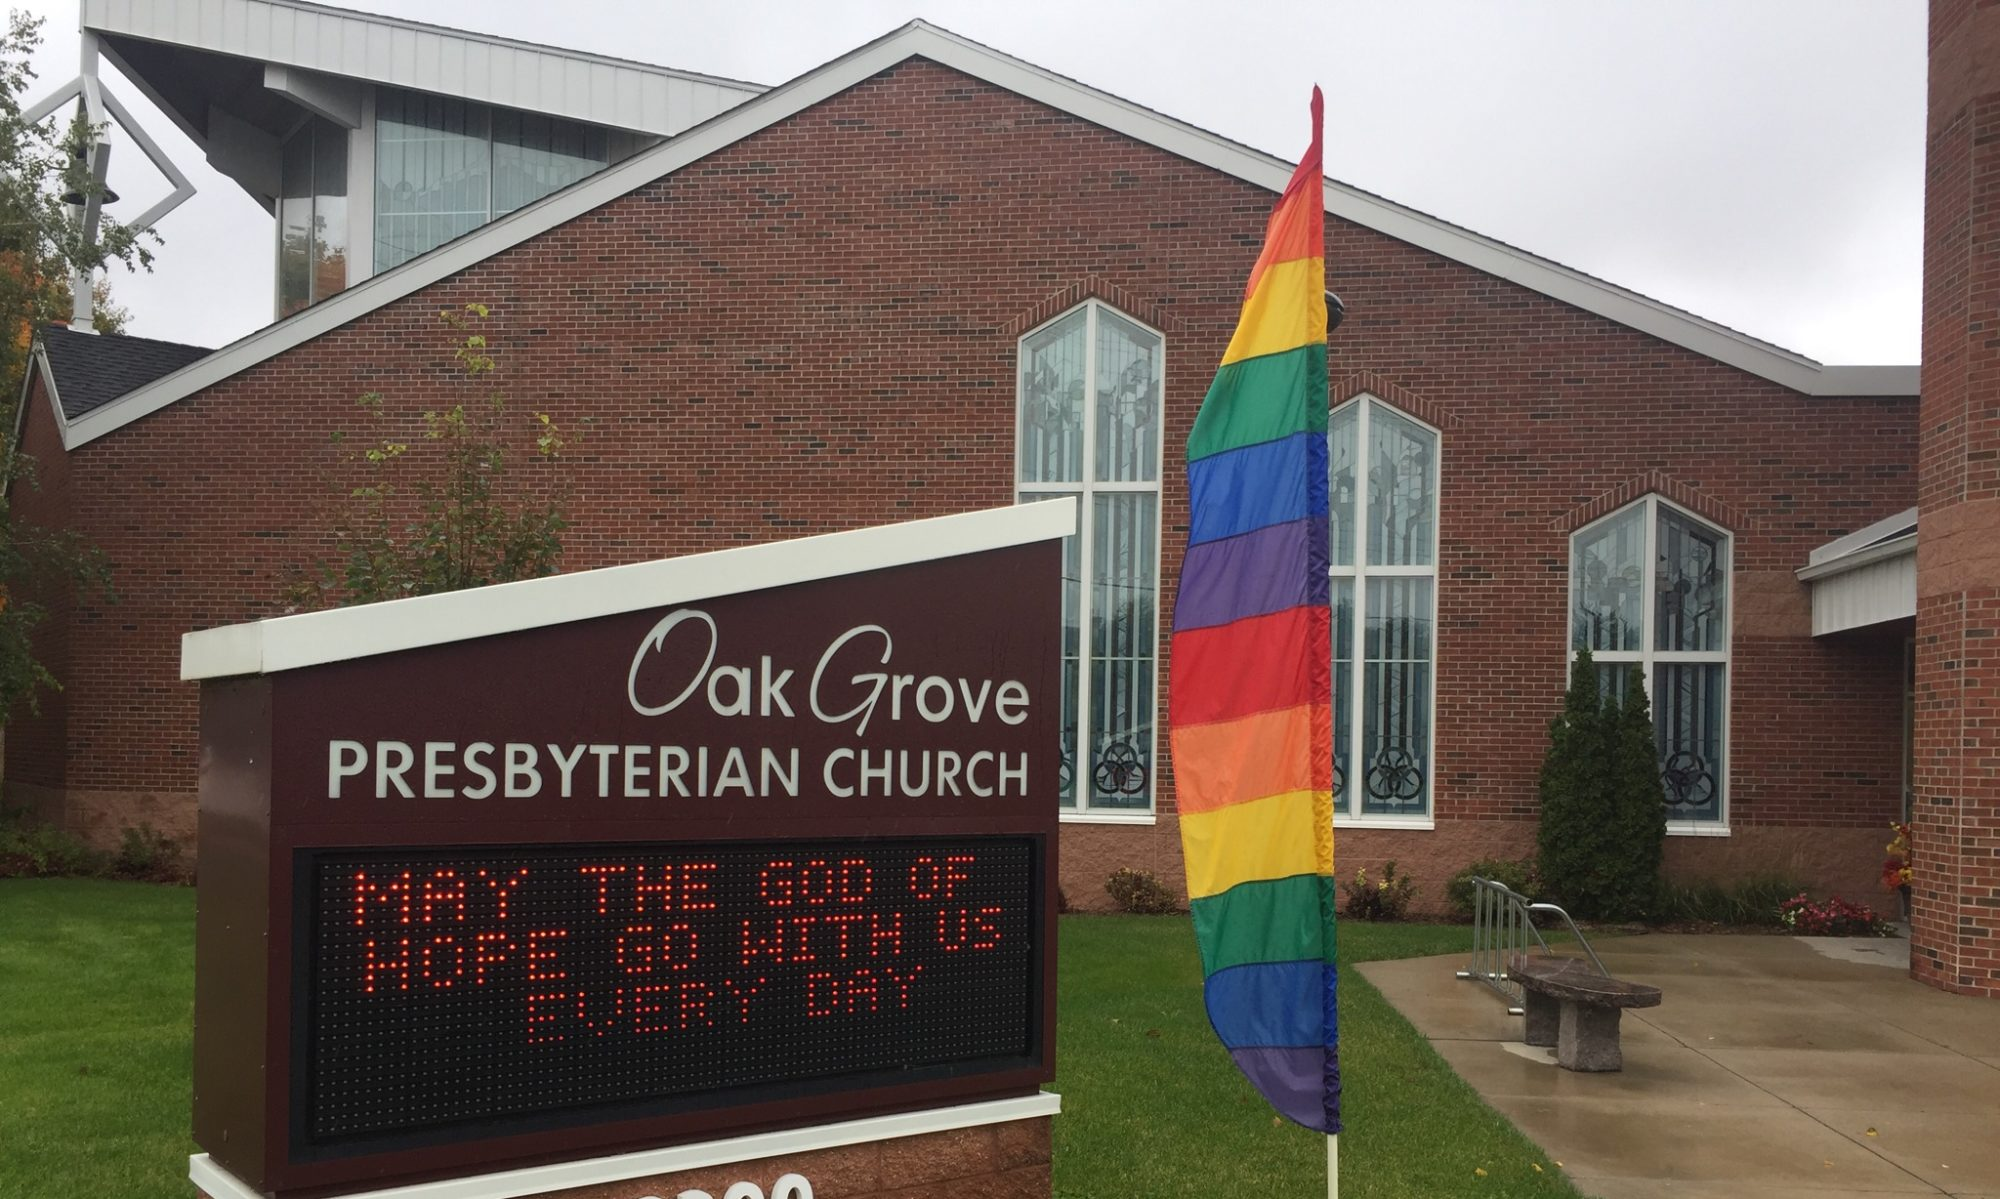 Oak Grove Presbyterian Church